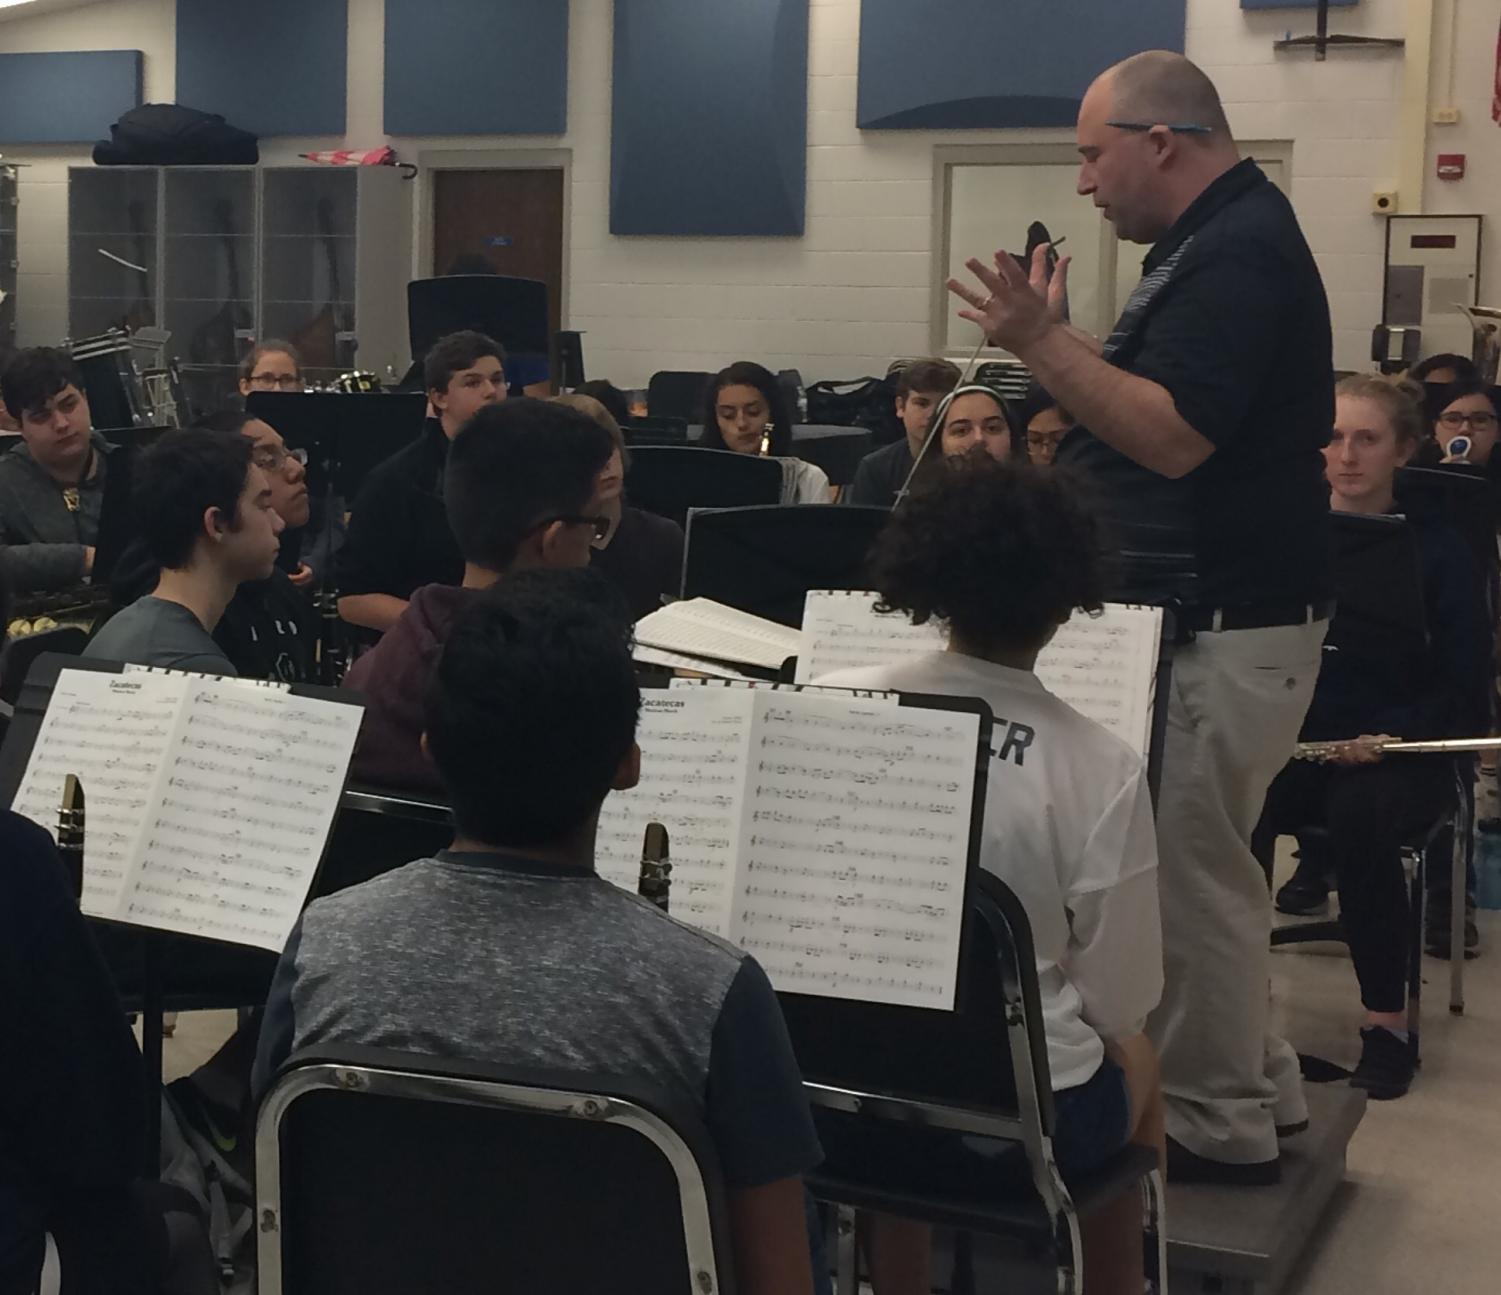 Band director James Wallace prepares students for the last band concert of the year on Wednesday in the auditorium.